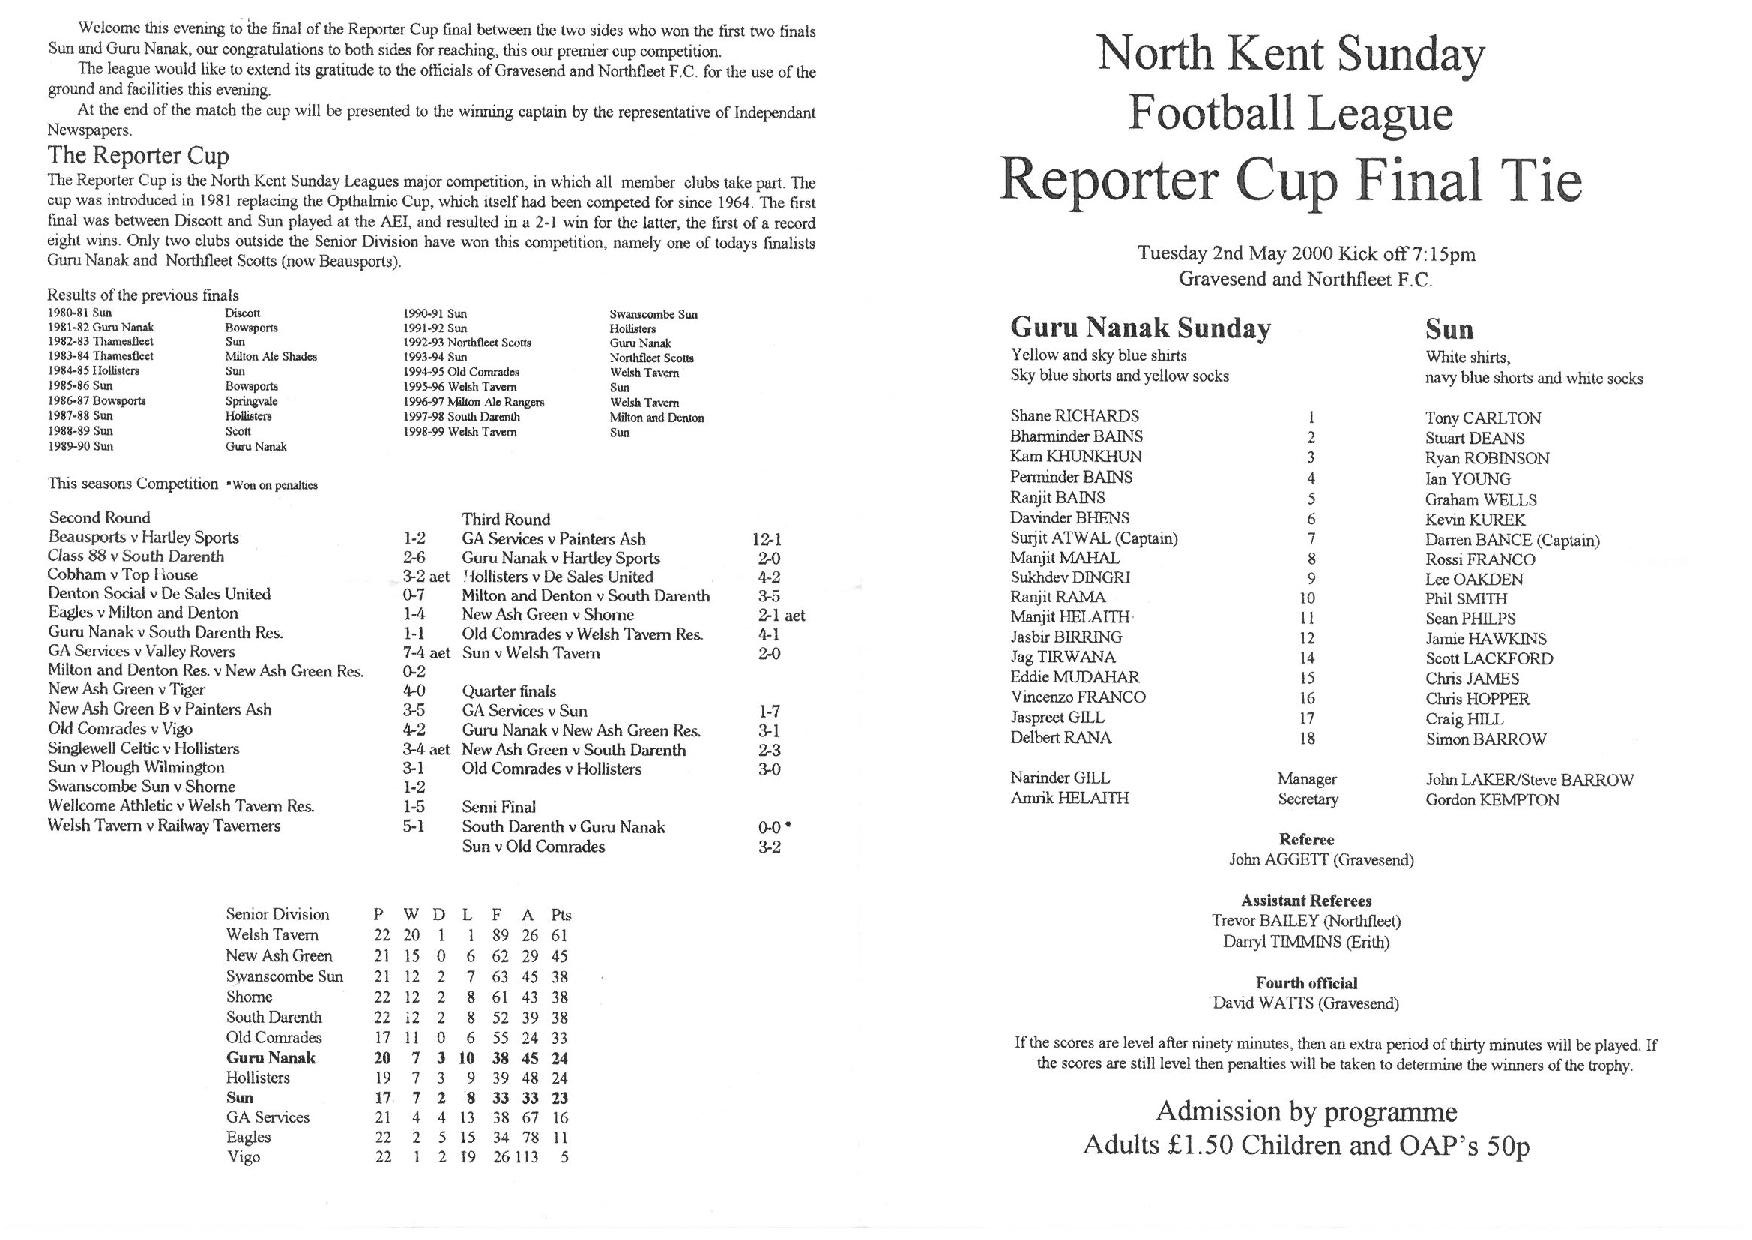 Reporter Cup Final 2000